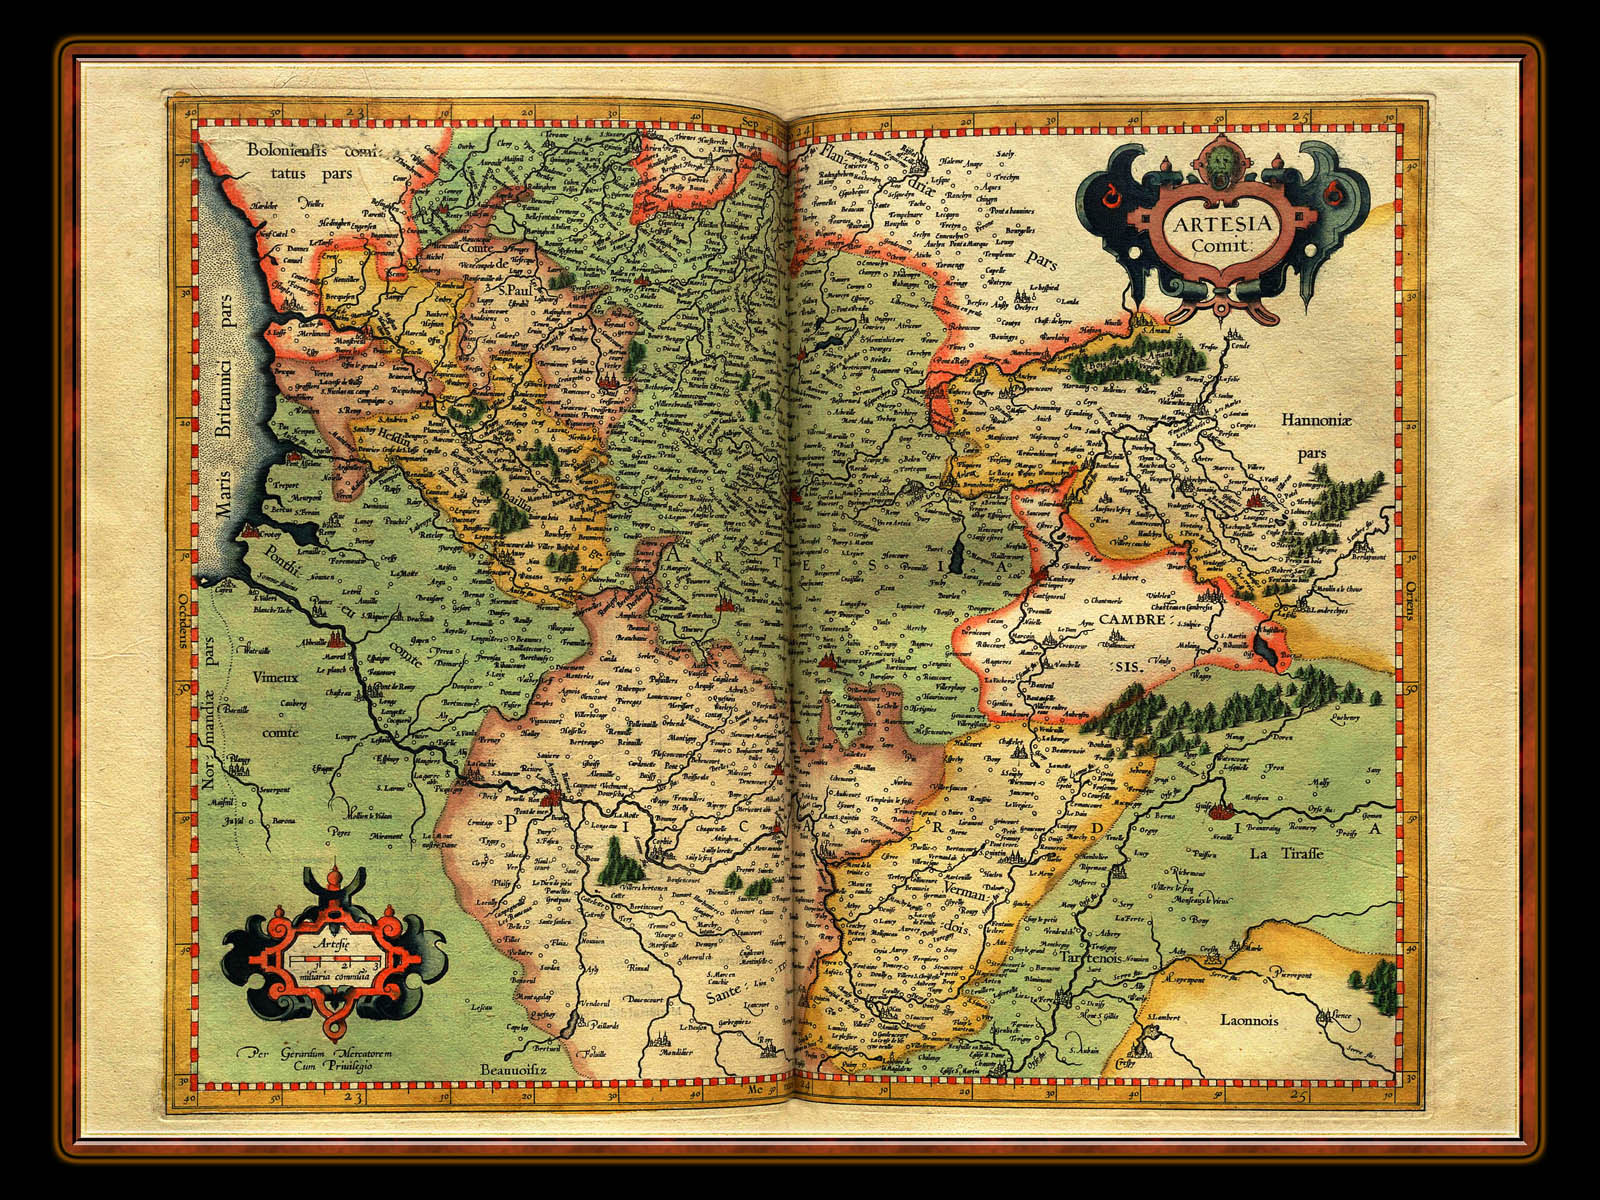 """Gerhard Mercator 1595 World Atlas - Cosmographicae"" - Wallpaper No. 51 of 106. Right click for saving options."